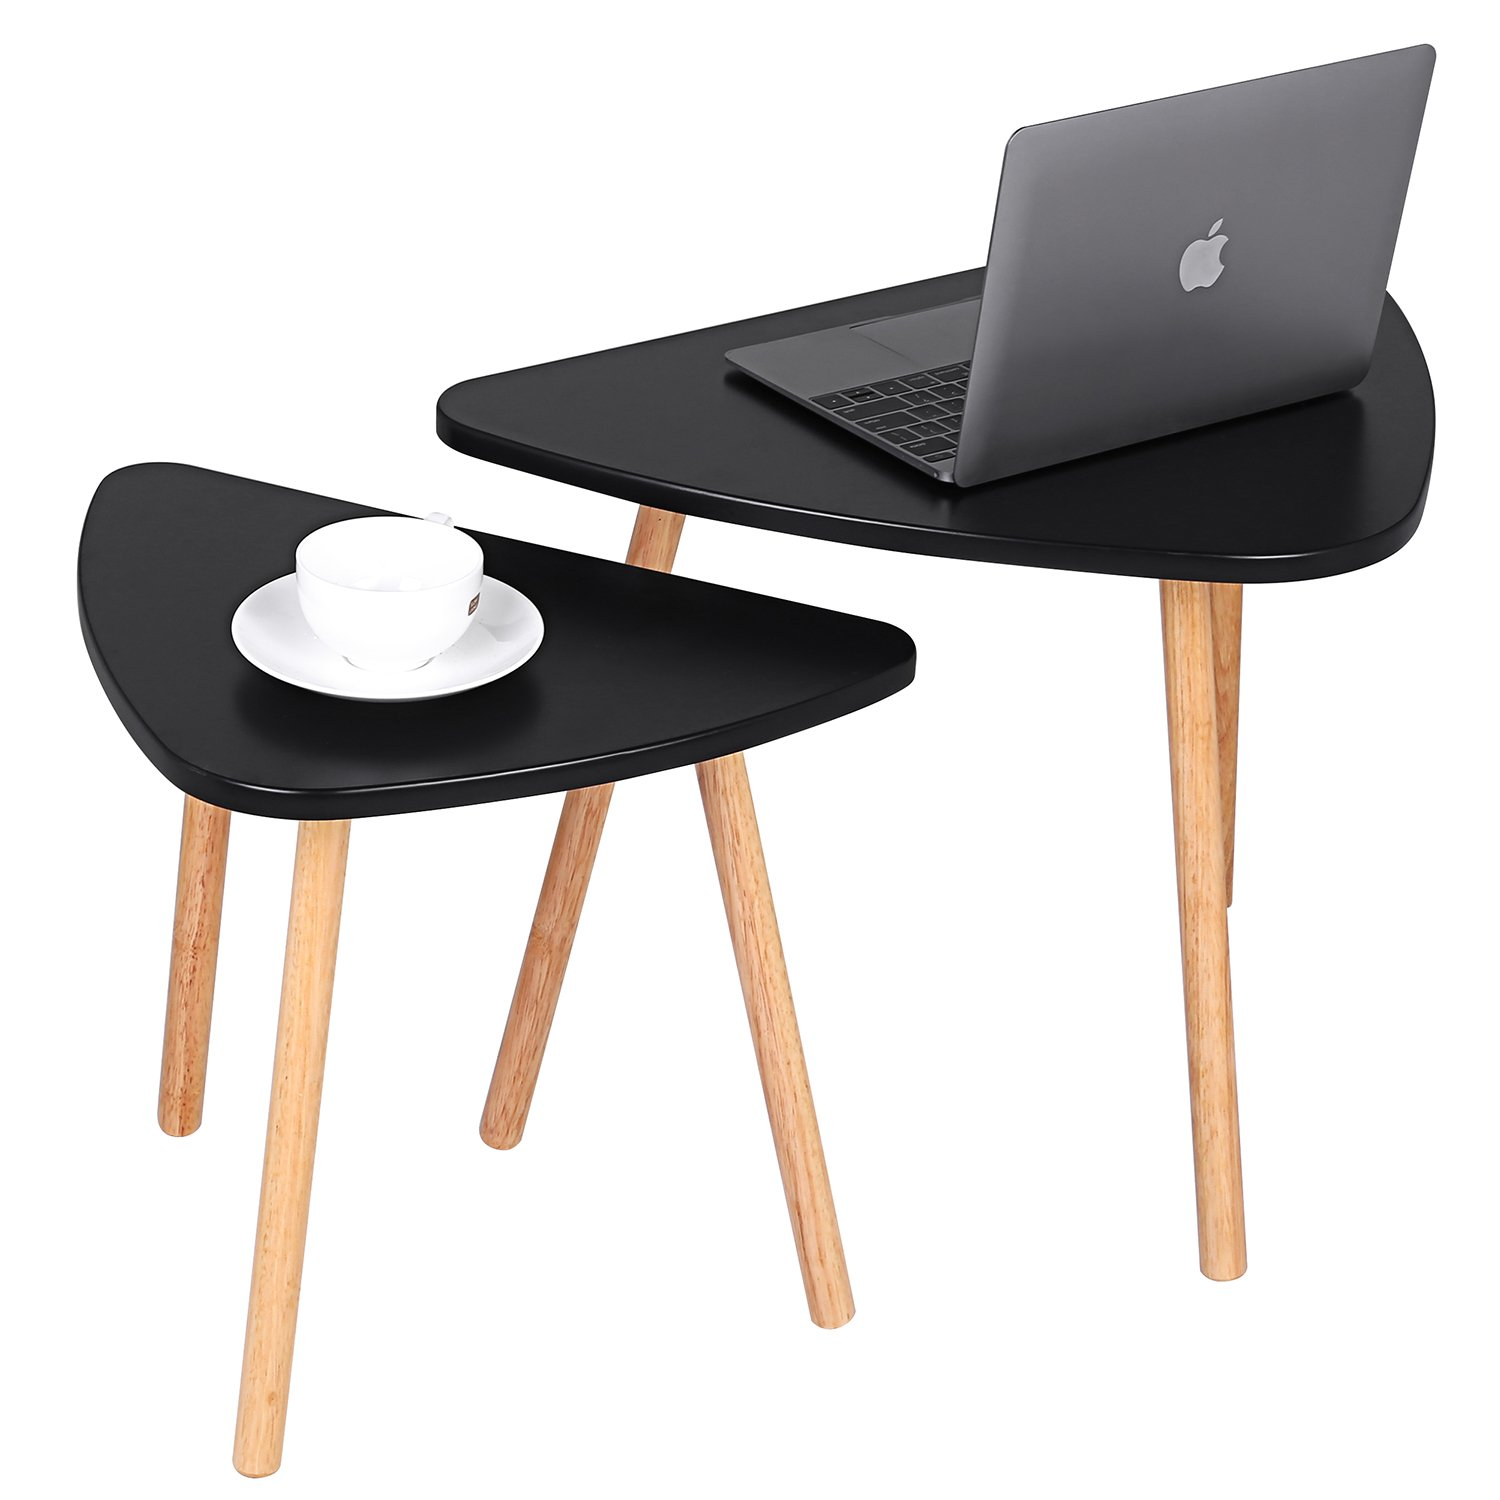 Vividy Mini Black End Table Set of 2, Portable Wooden Corner Stacking Tea Table Modern Furniture Decor Side Coffee Table for Living Room, Balcony and Office(Black)